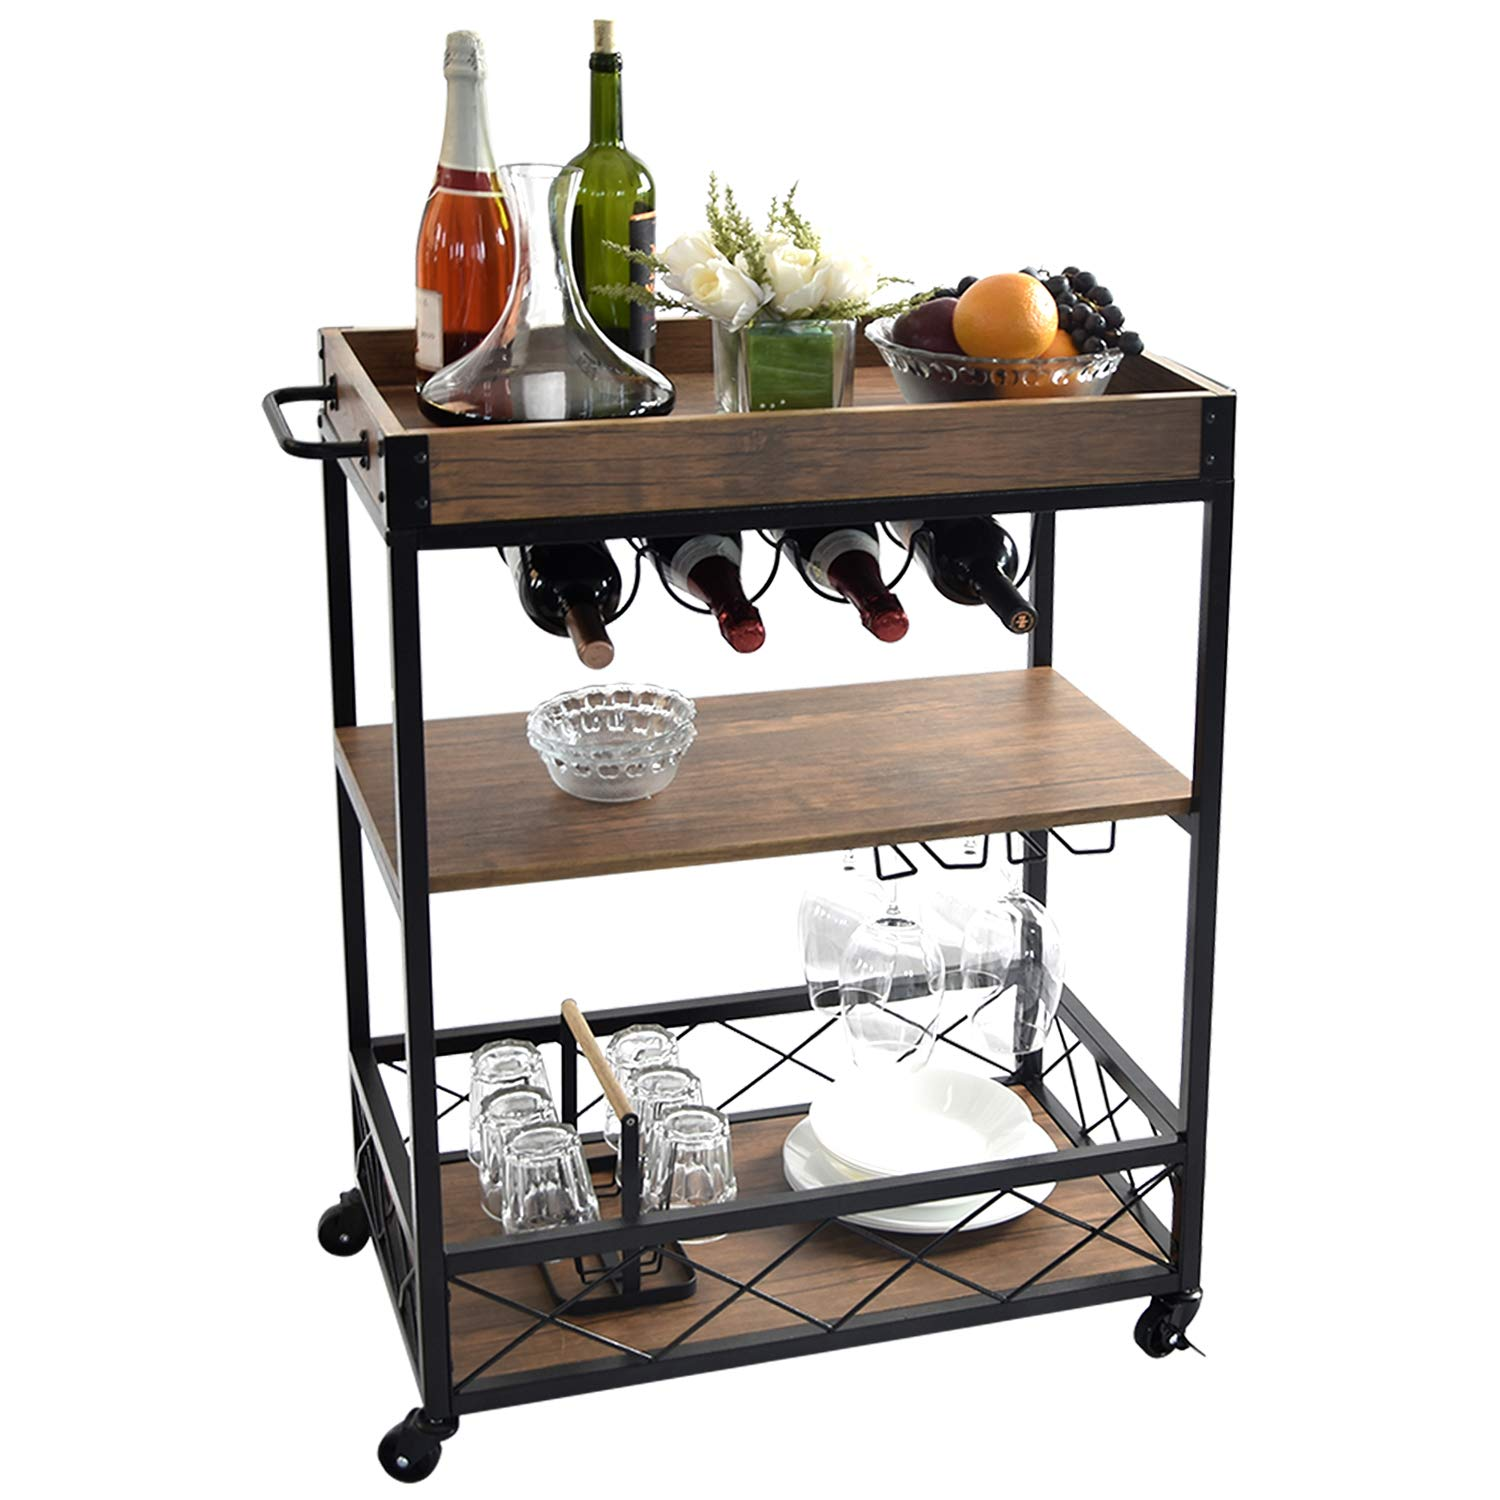 NSdirect Kitchen Cart,Industrial Kitchen Bar&Serving Cart Rolling Utility Storage Cart with 3-Tier Shelves,Metal Wine Rack Storage and Glass Bottle Holder,Removable Wood Box Container,Brown by NSdirect